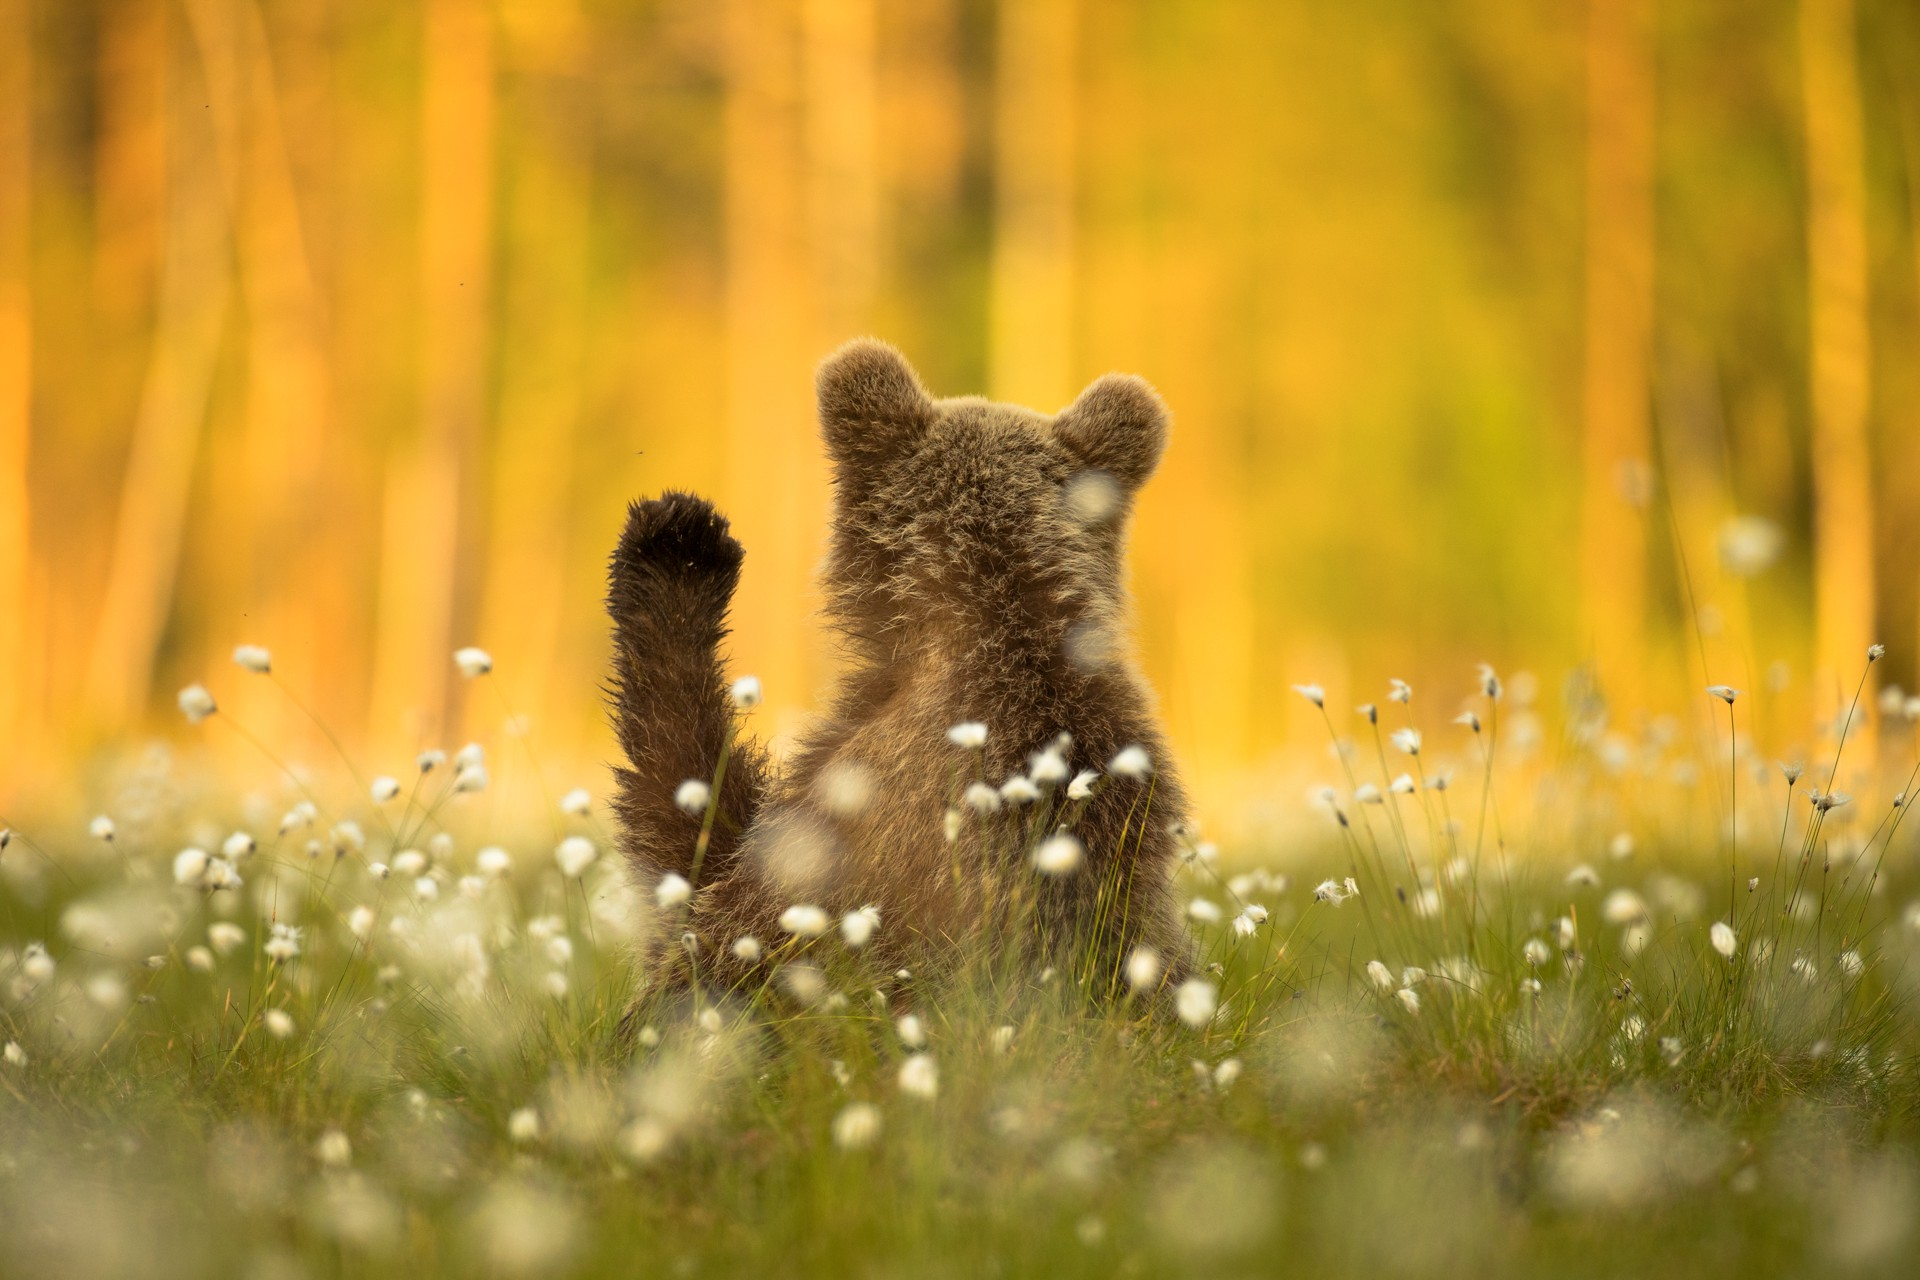 A young bear appears to wave in Finland.